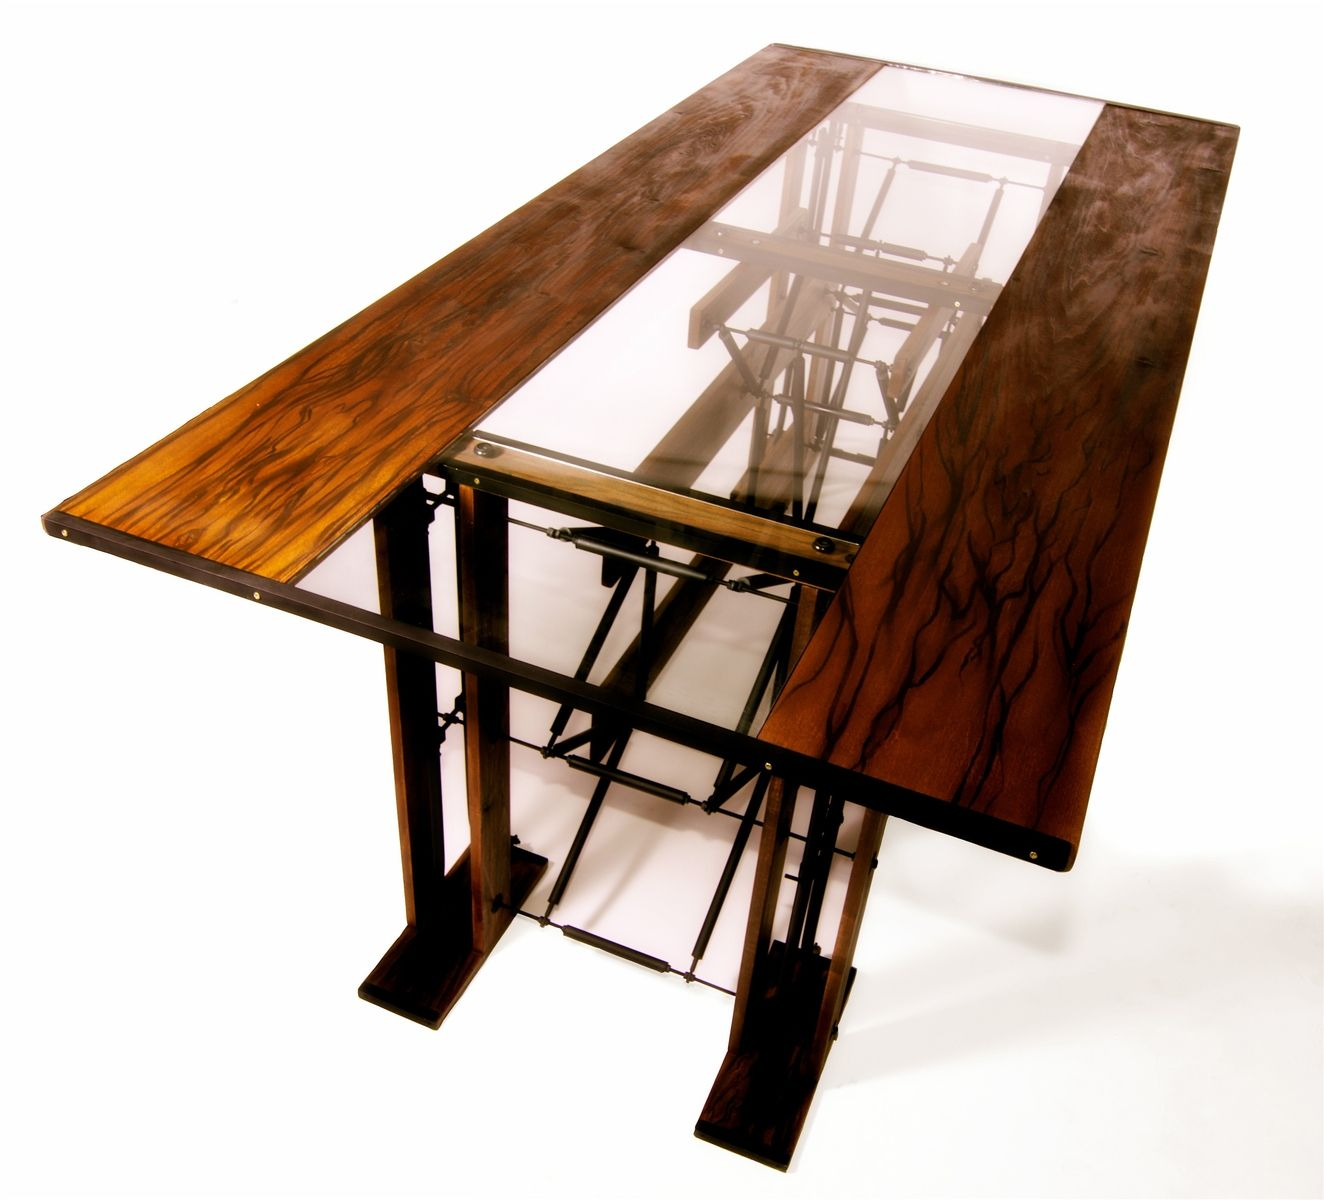 Hand made custom contemporary industrial eclectic dining table by interactive dezigns - Dining room table contemporary ...